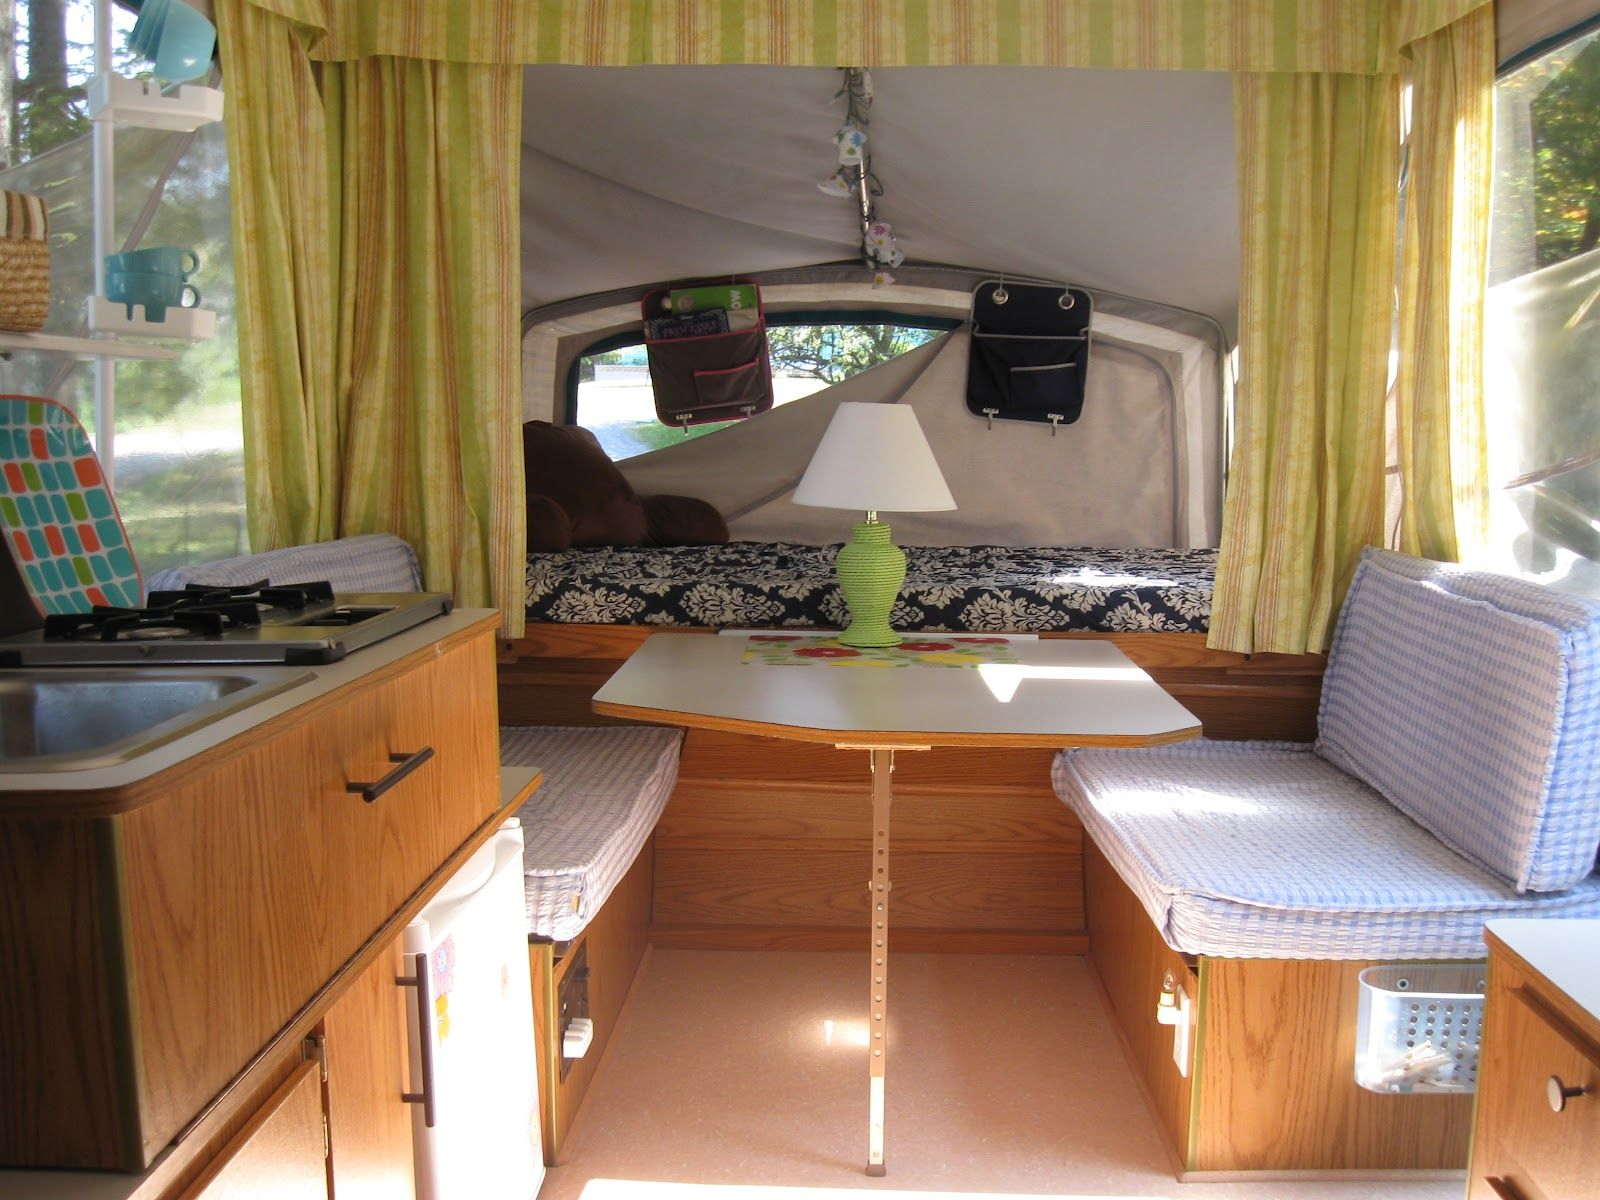 decorating a pop up camper new curtains new slipcovers new cover on